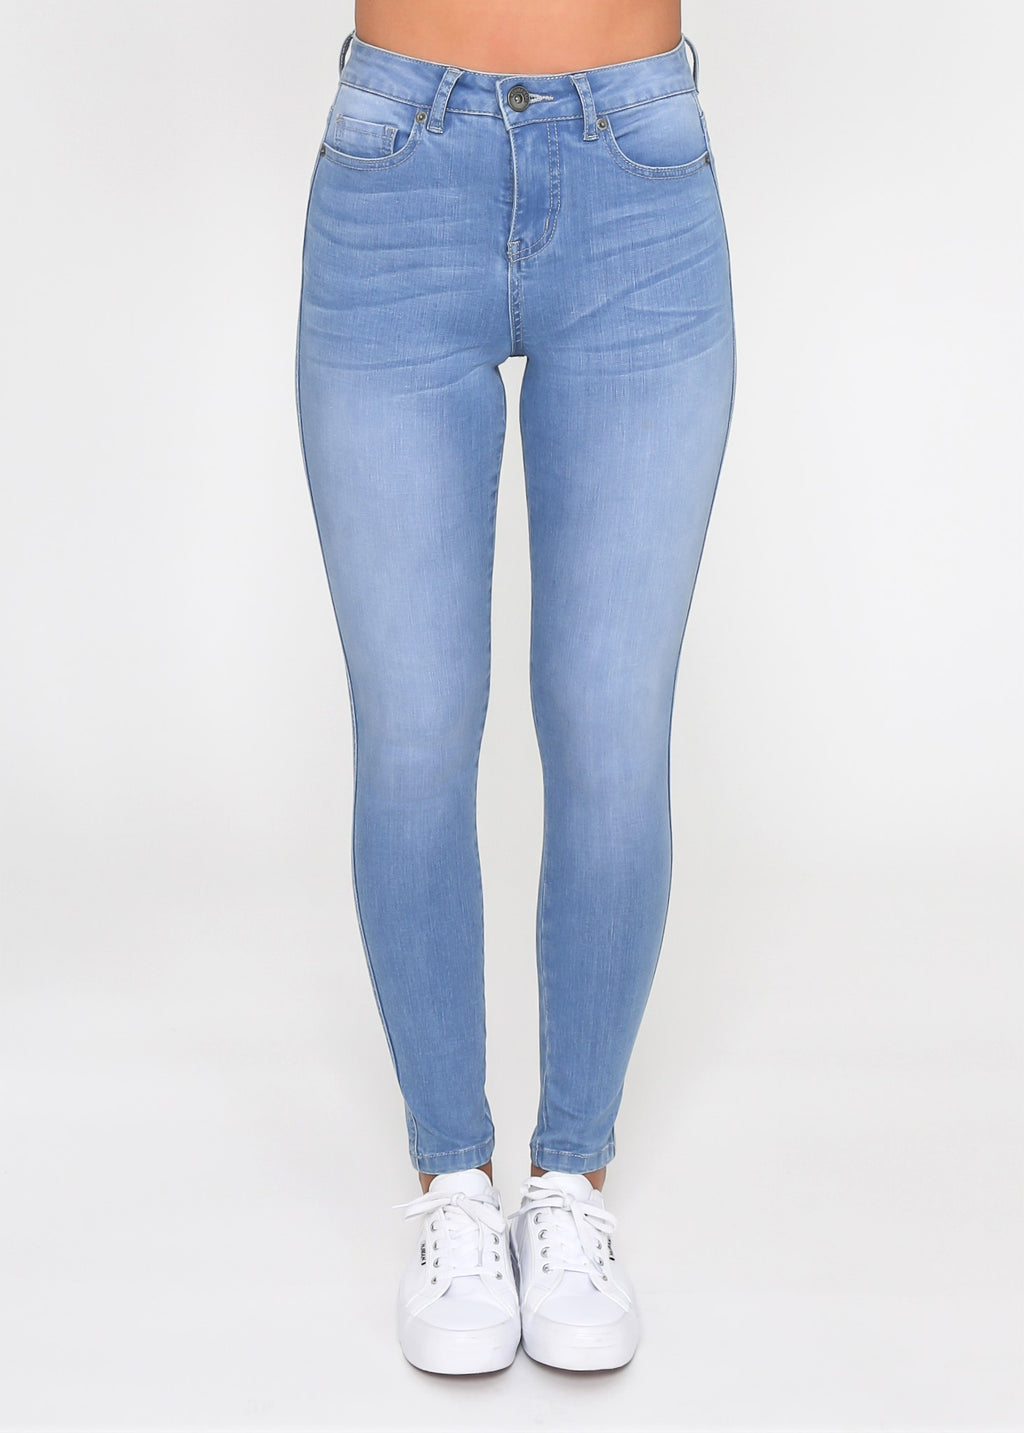 KHLOE SKINNY JEAN - LIGHT BLUE WASH